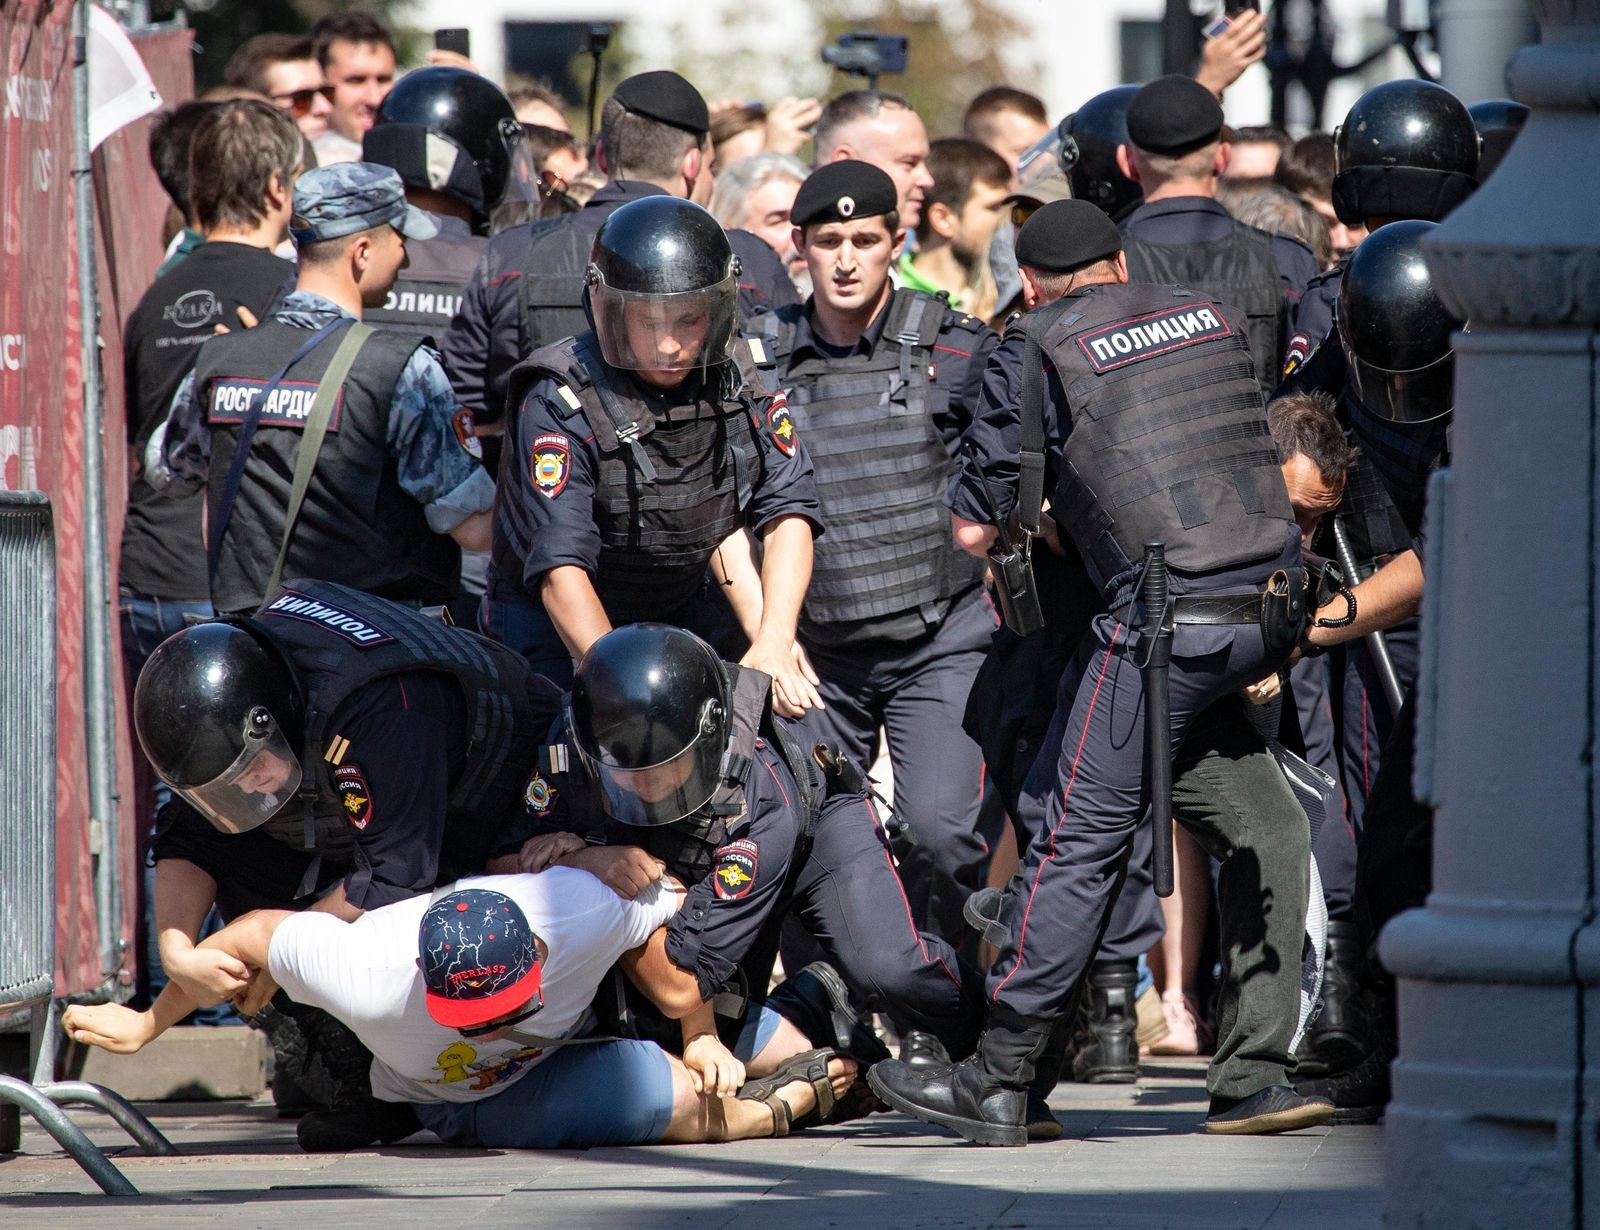 FILE - In this file photo taken on Saturday, July 27, 2019, police officers detain protesters during an unsanctioned rally in the center of Moscow, Russia.{ } (AP Photo/Alexander Zemlianichenko, File)